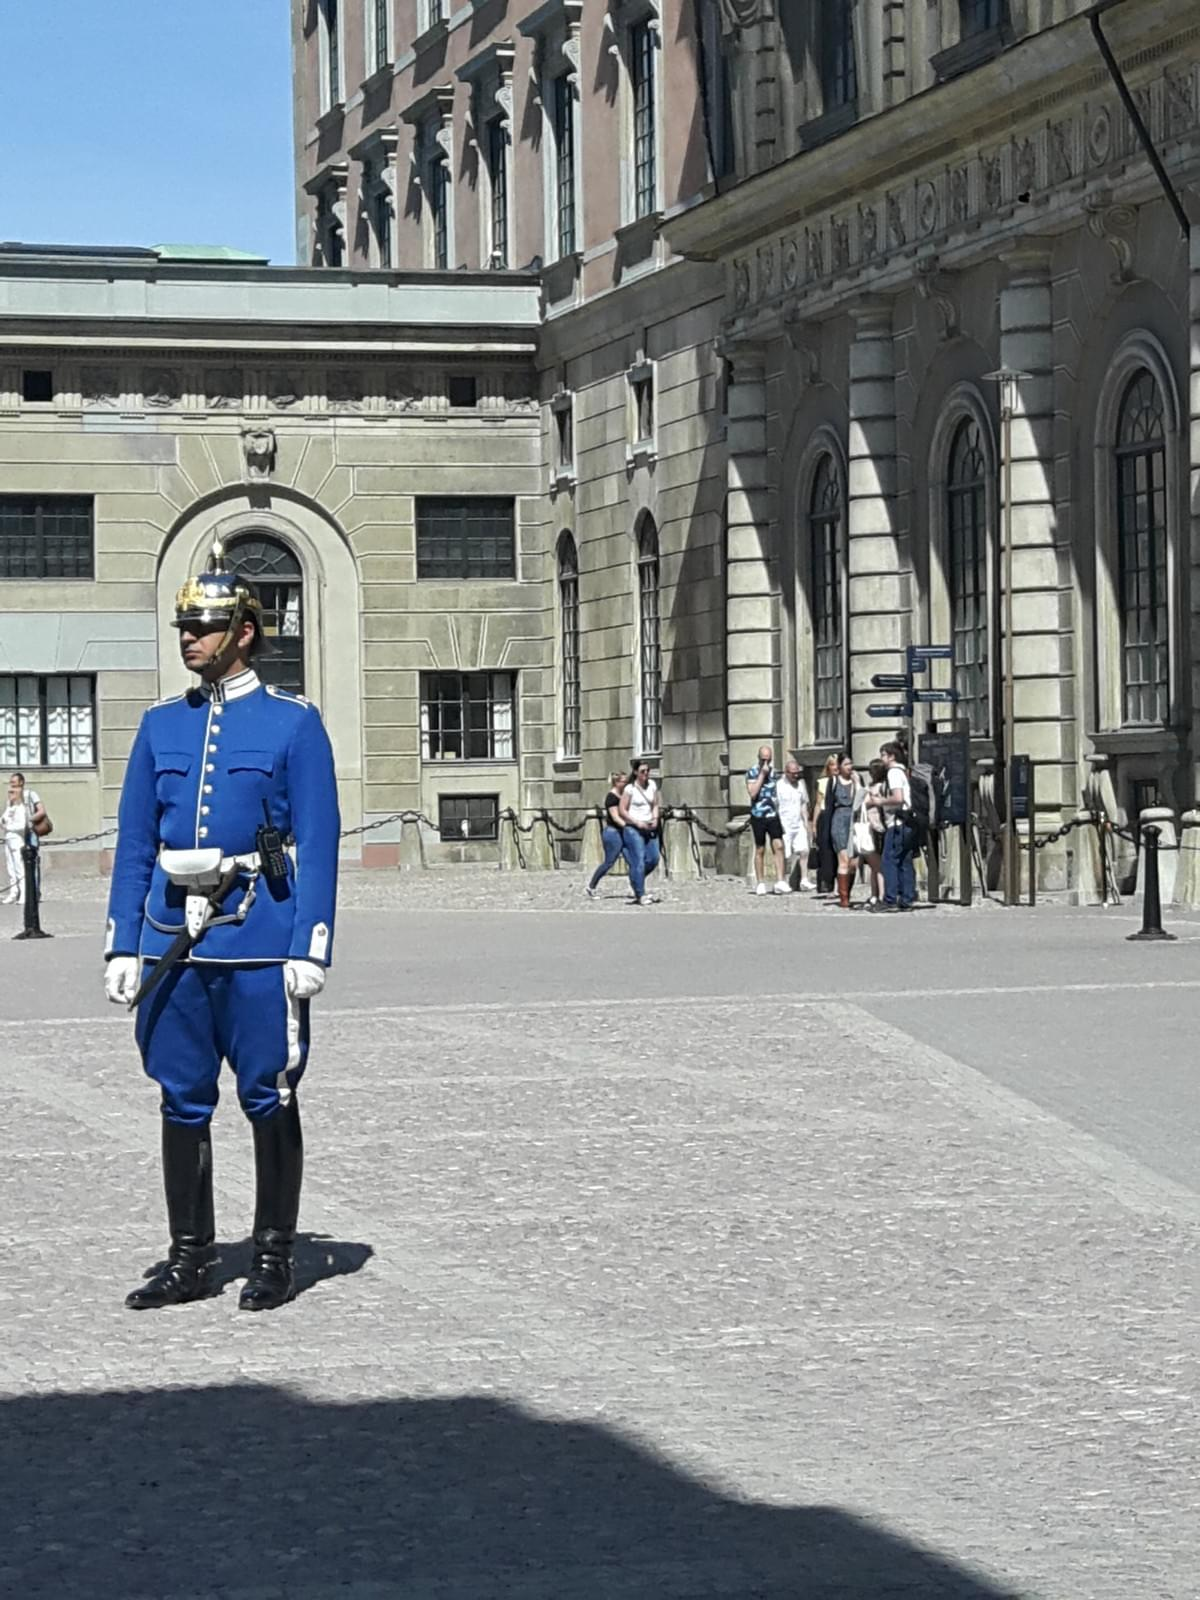 Security Guard on Duty in Royal Palace at Stockholm